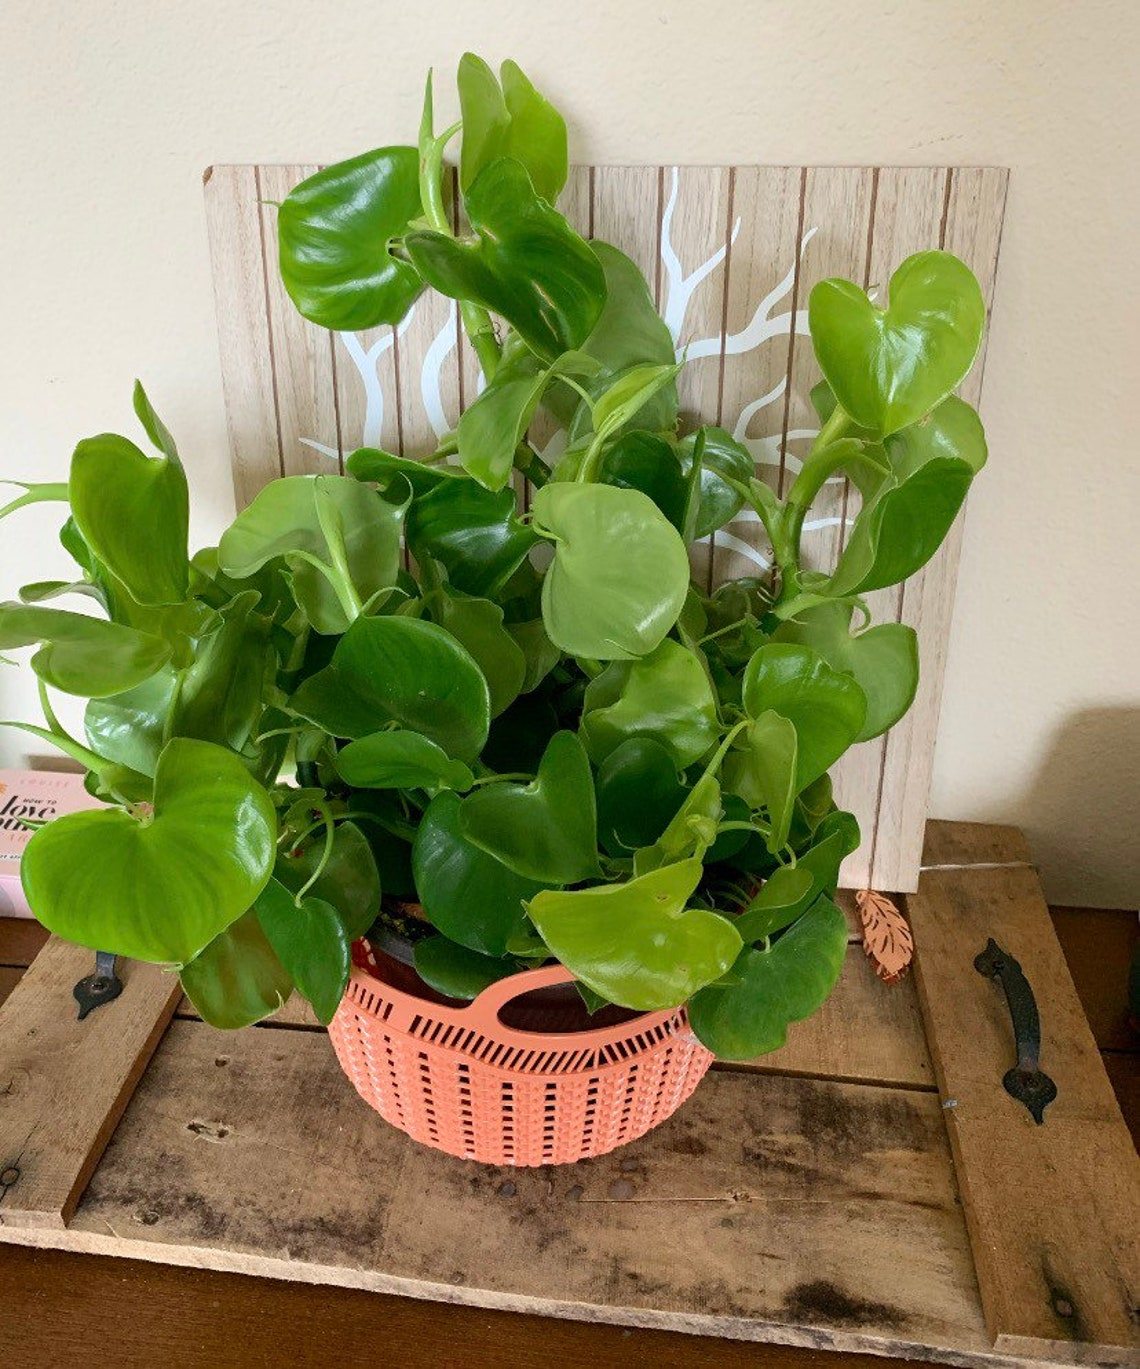 Philodendron Grazielae cutting image 0